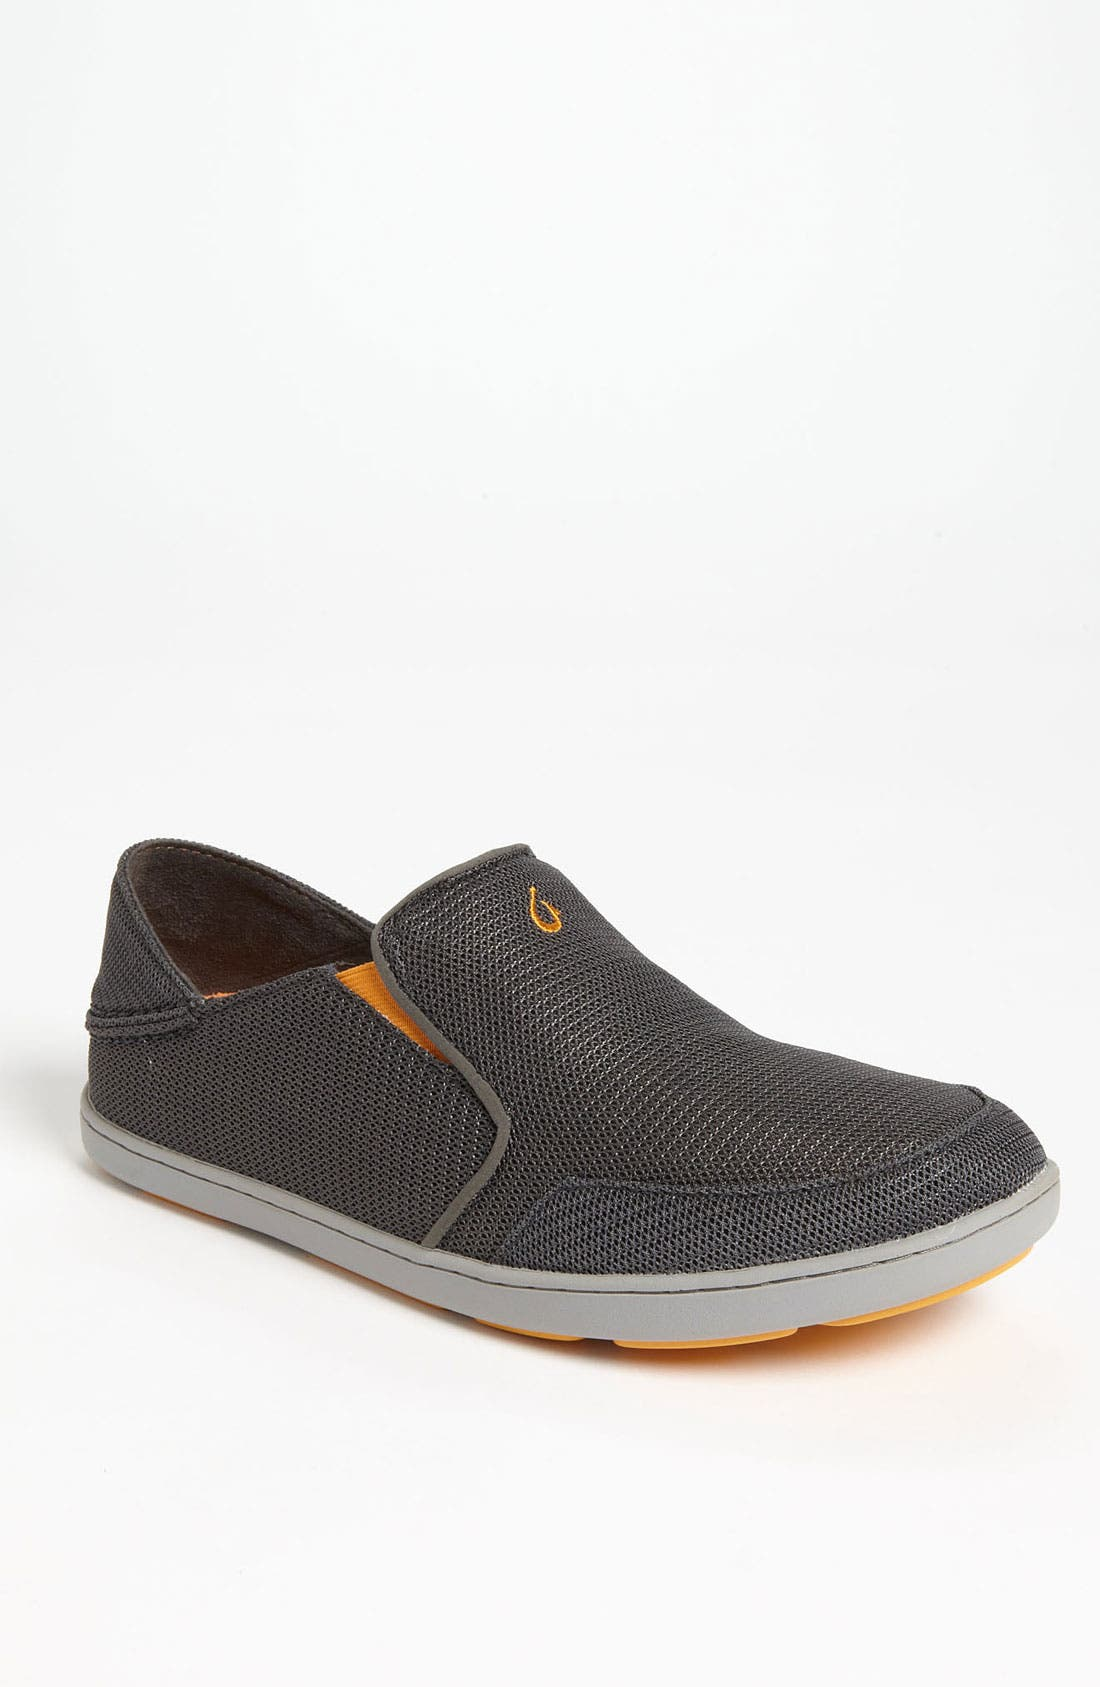 OluKai 'Nohea' Mesh Slip-On (Men) (Regular Retail Price: $84.95)